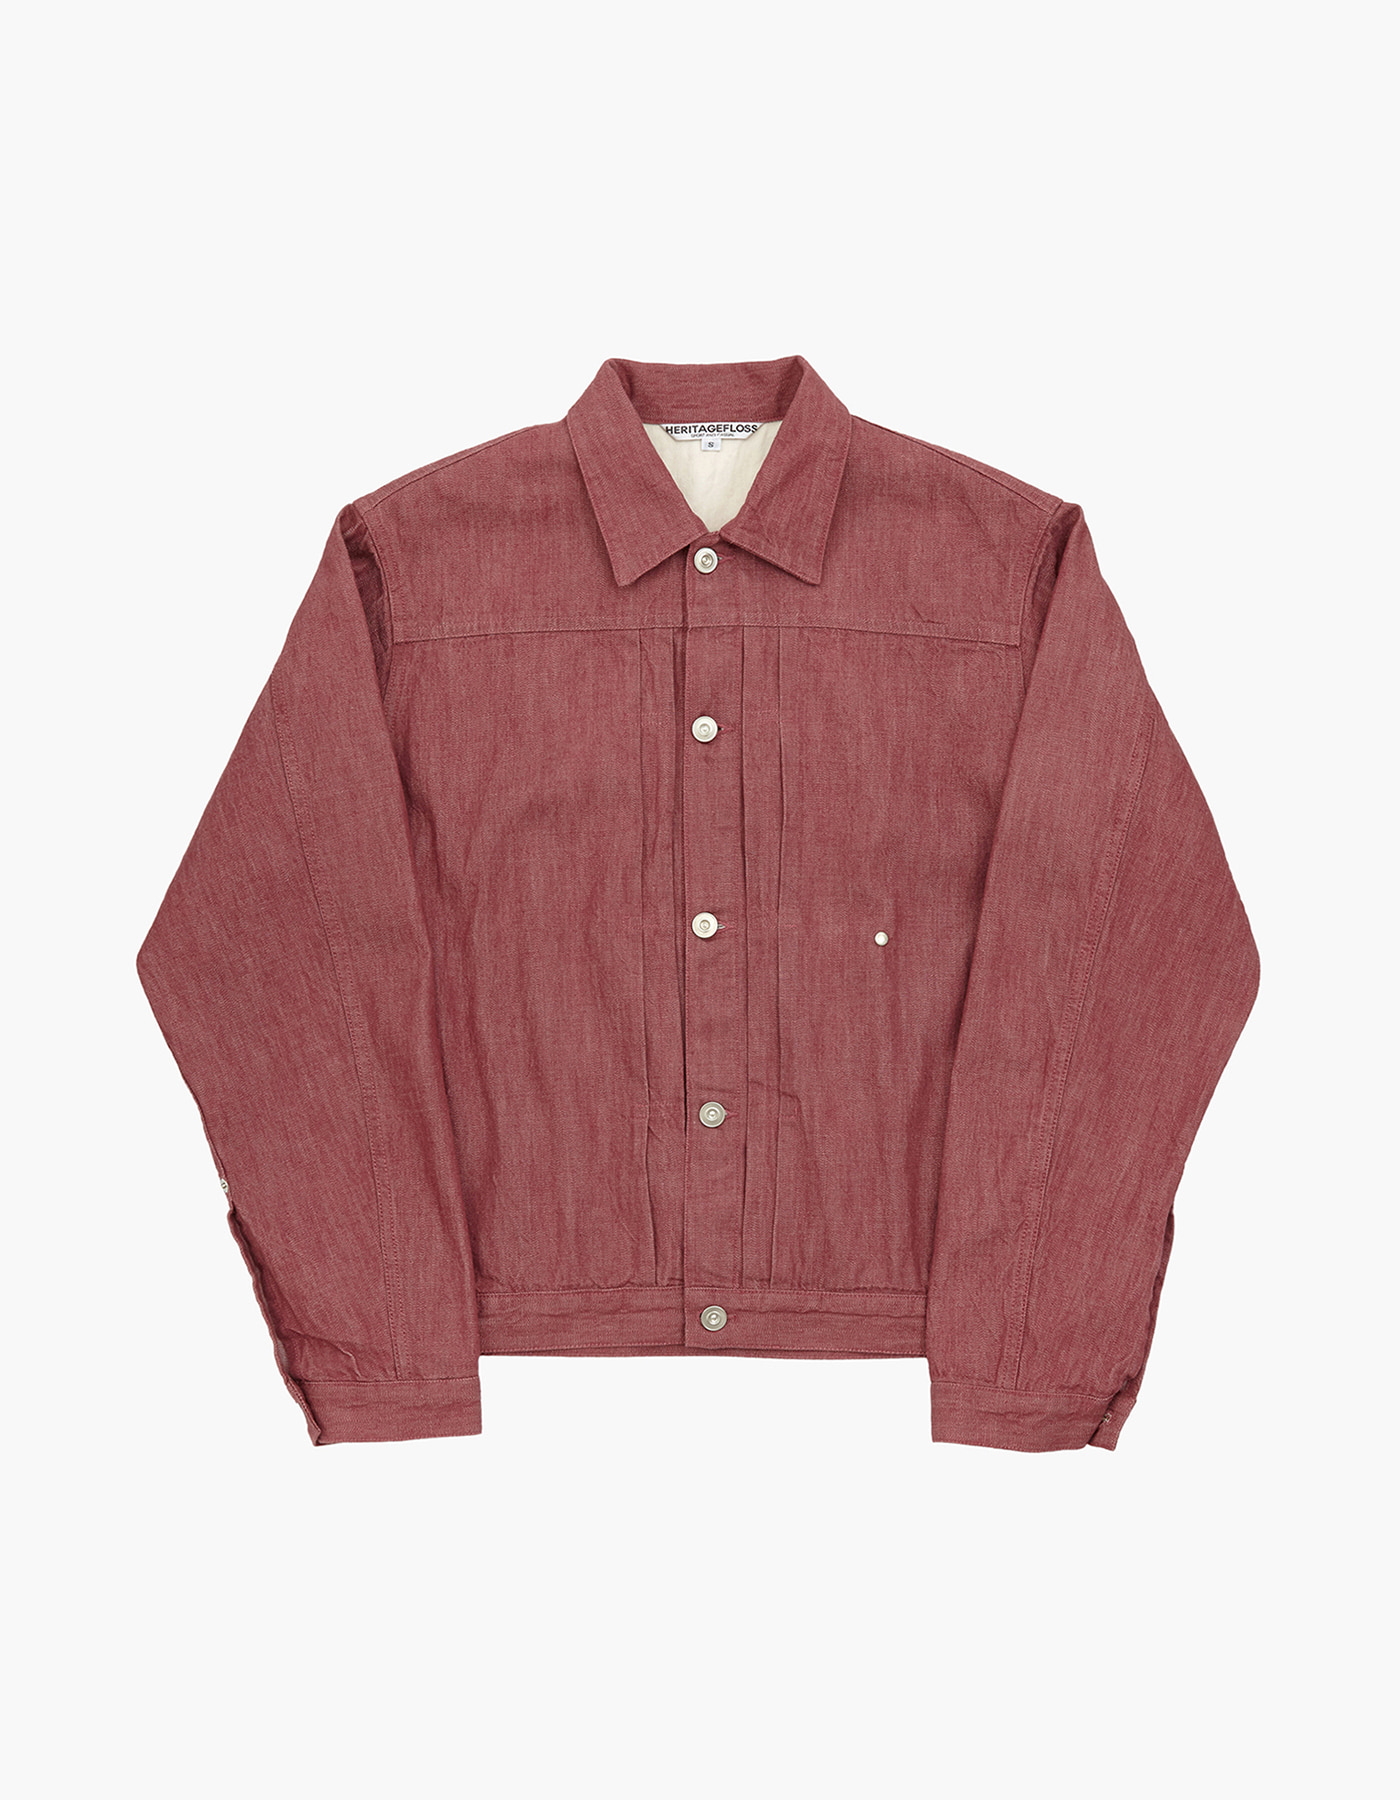 YARN DYED DENIM TRUCKER JACKET / RED